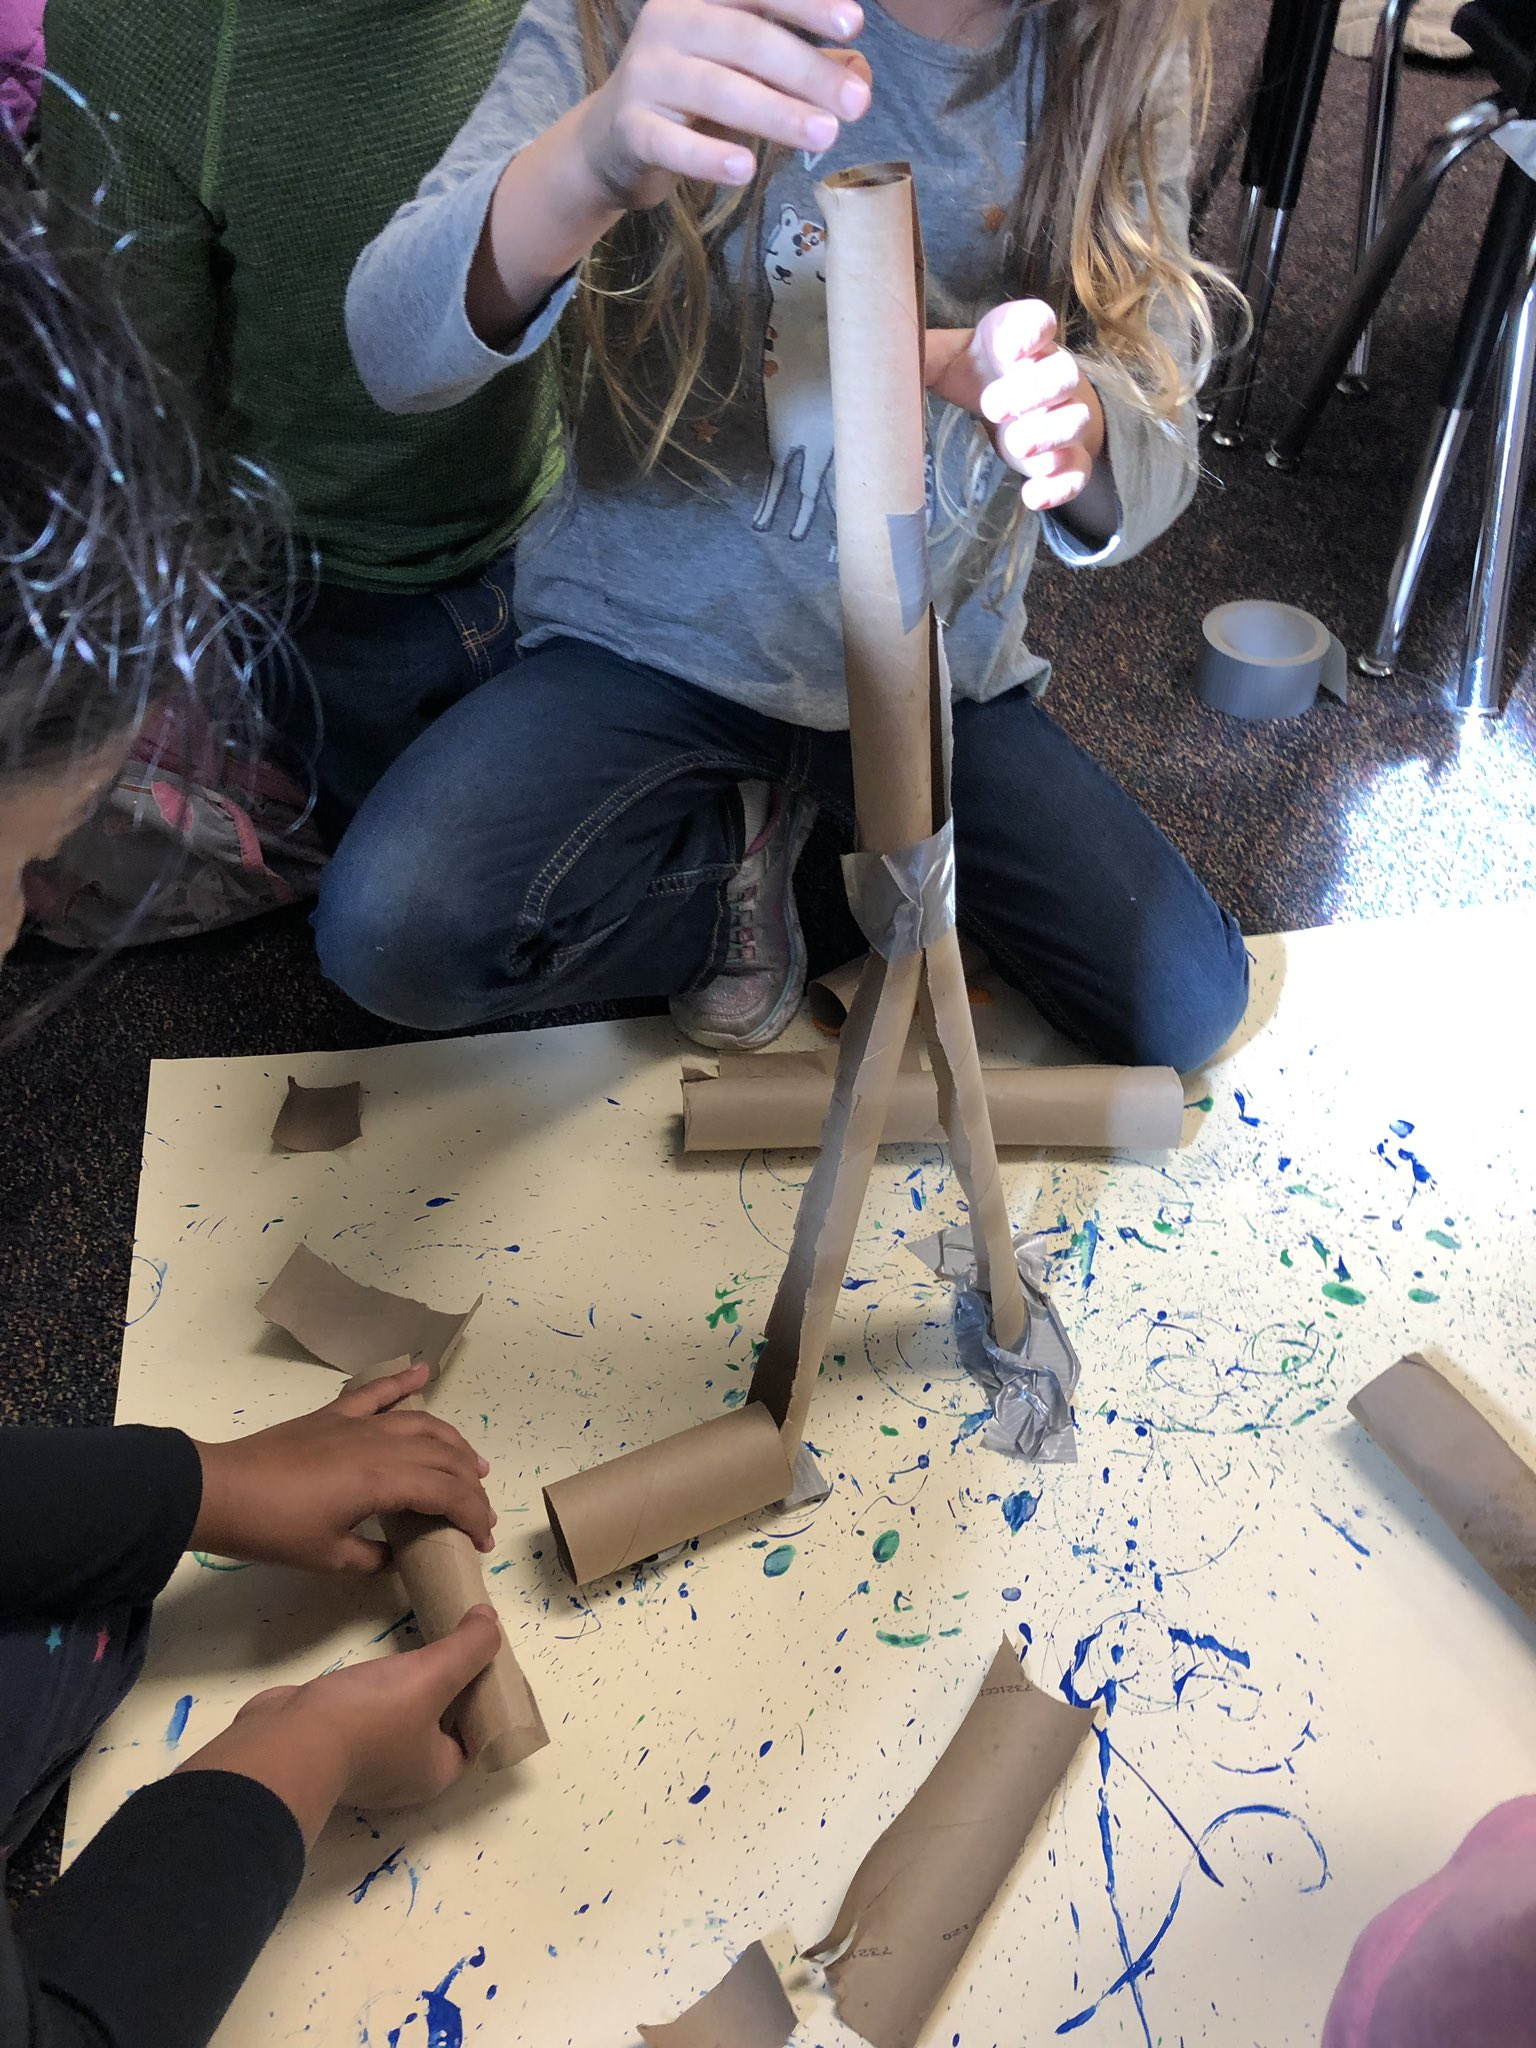 We made a plan-now it's time to execute and revise our marble mazes  #MsJs2nd #handsonscience #designprocess https://t.co/yTqxSuokIu